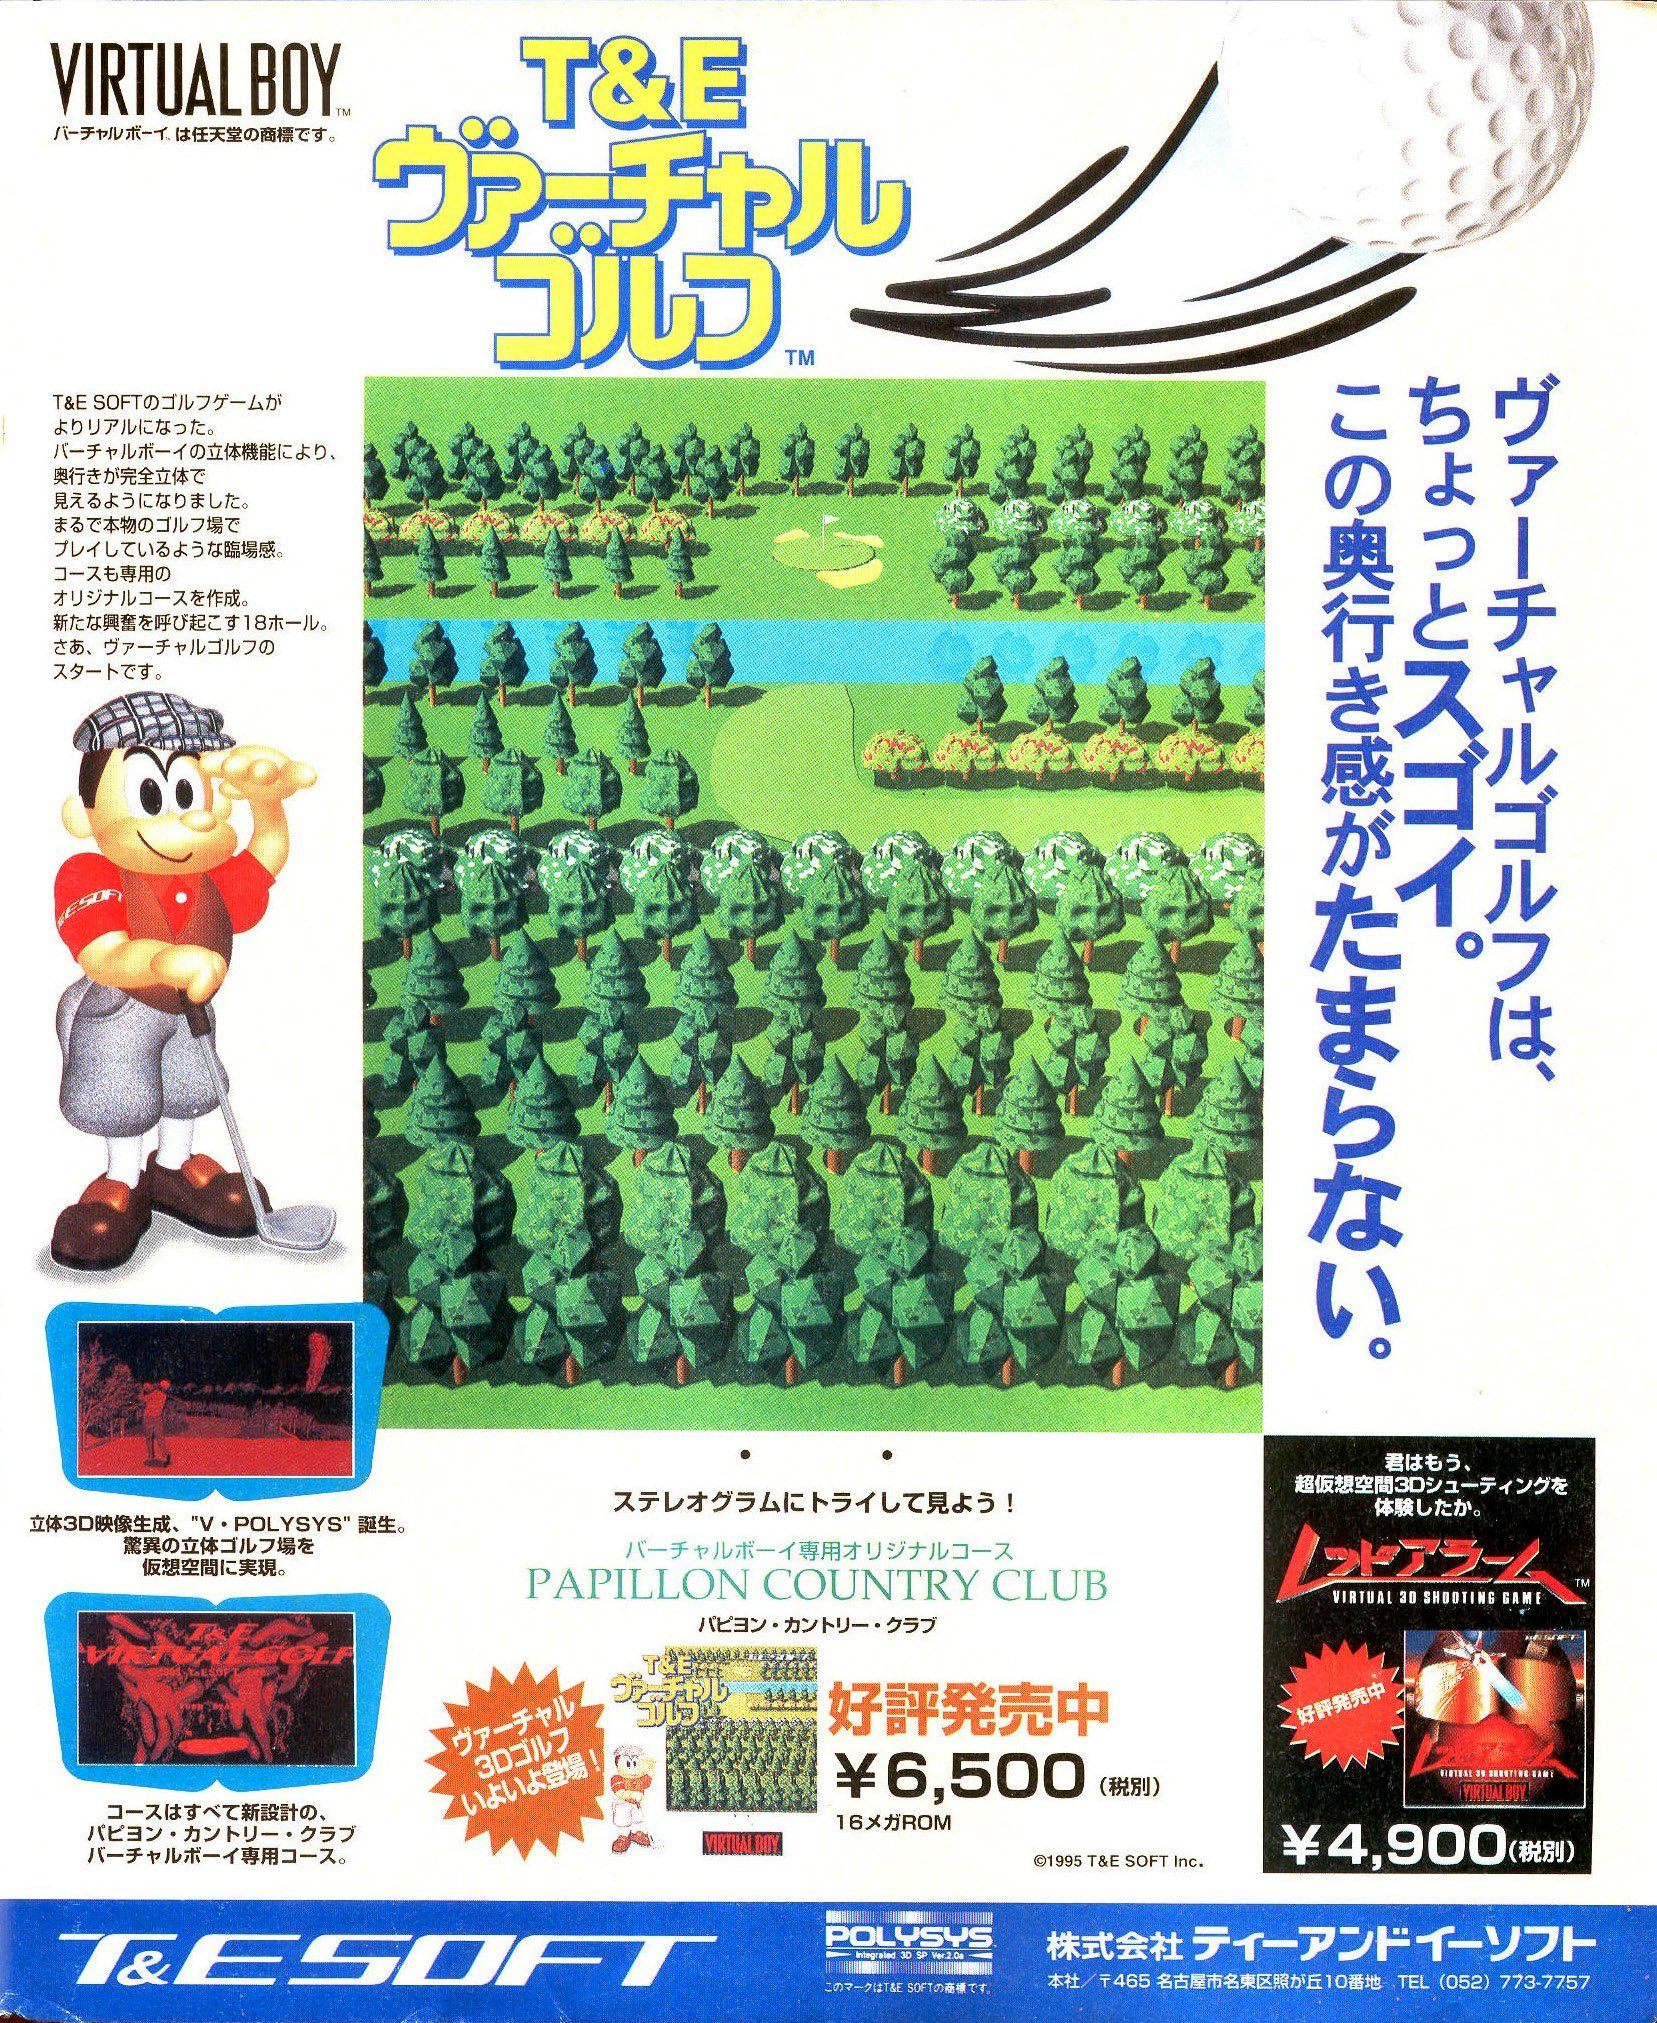 Golf (T&E Virtual Golf) (Japan) (3)